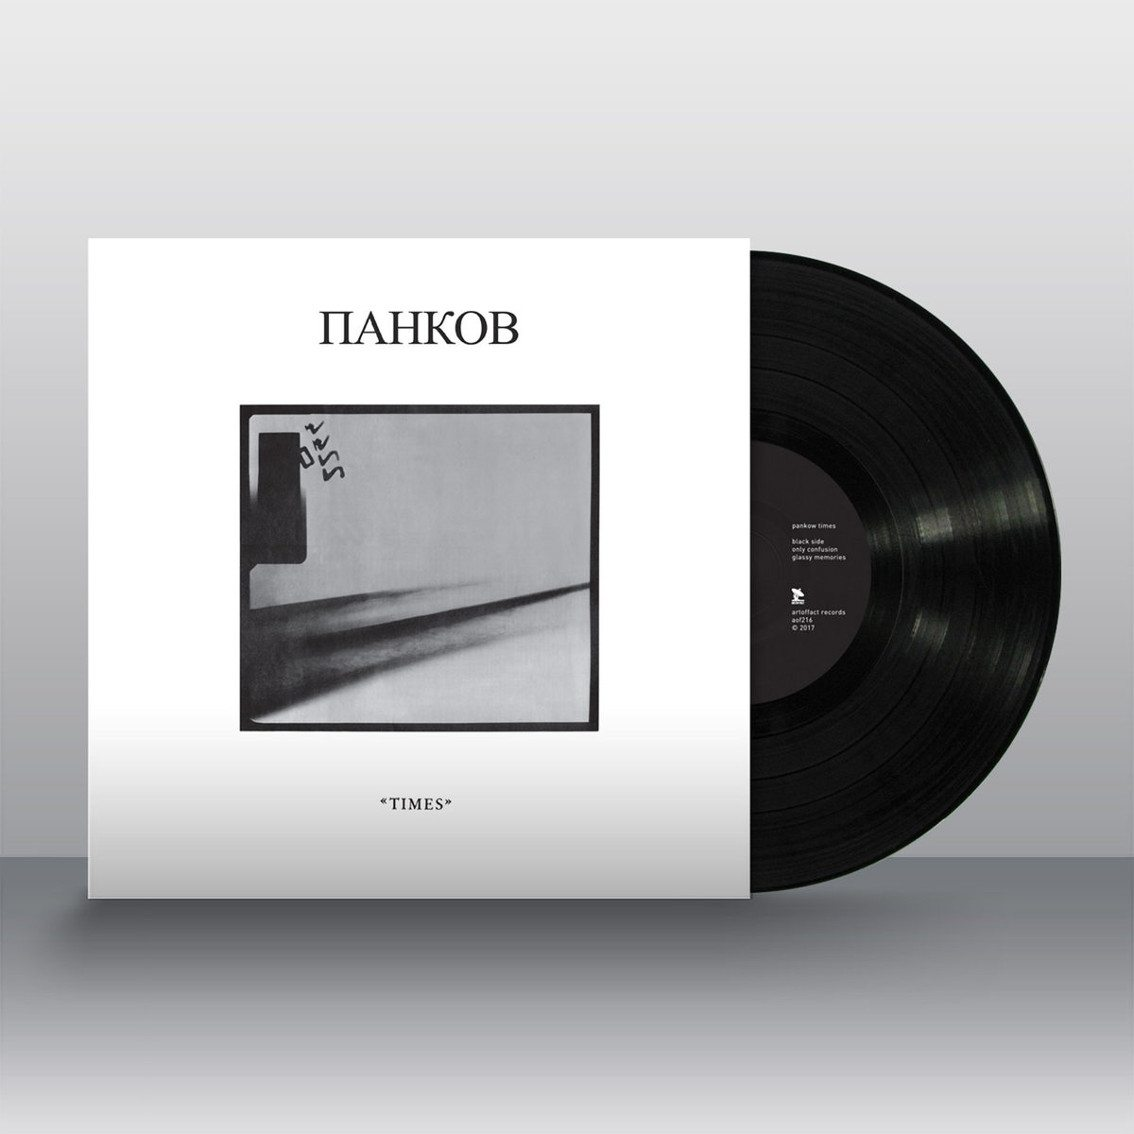 Pankow sees 2 oldest and 2 previously unreleased tracks united on super limited 10 inch vinyl'Times' - order here